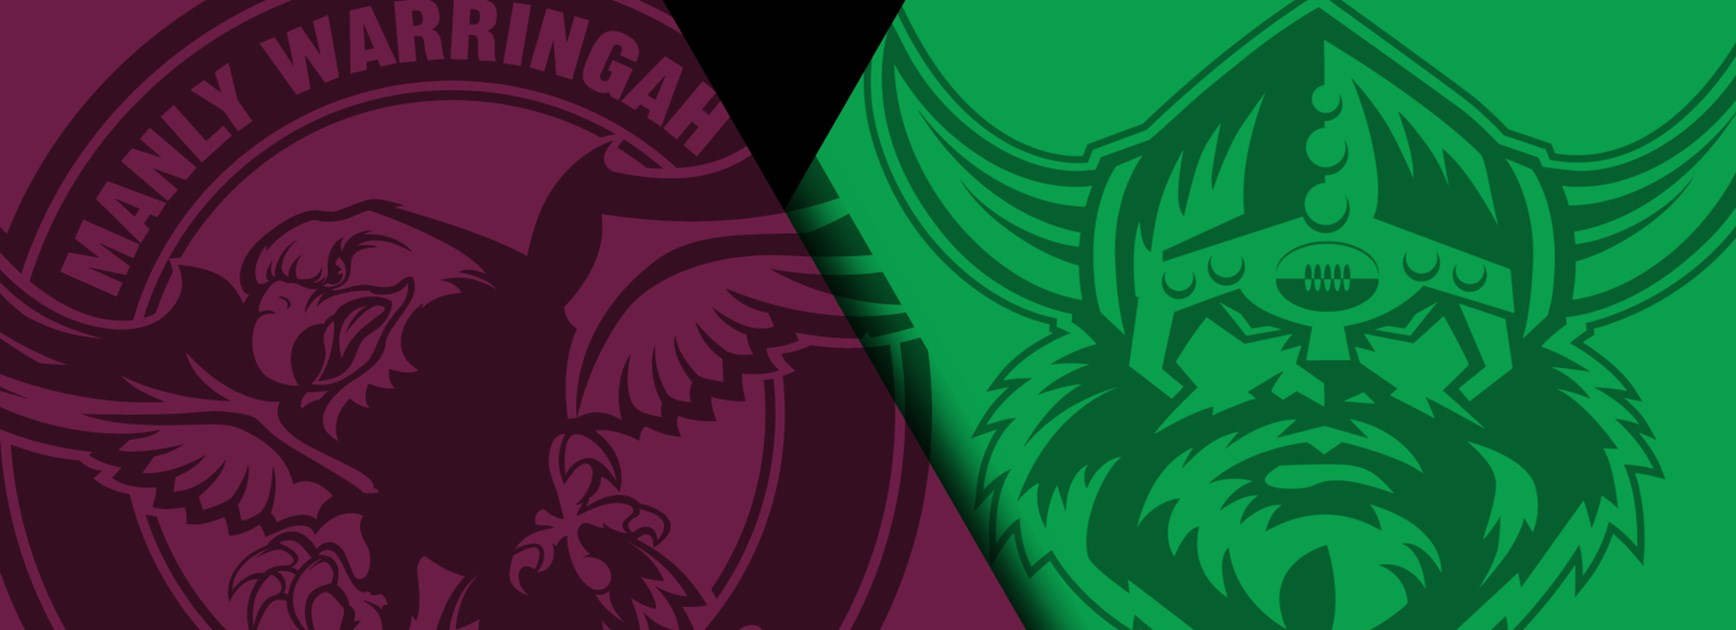 Sea Eagles v Raiders.